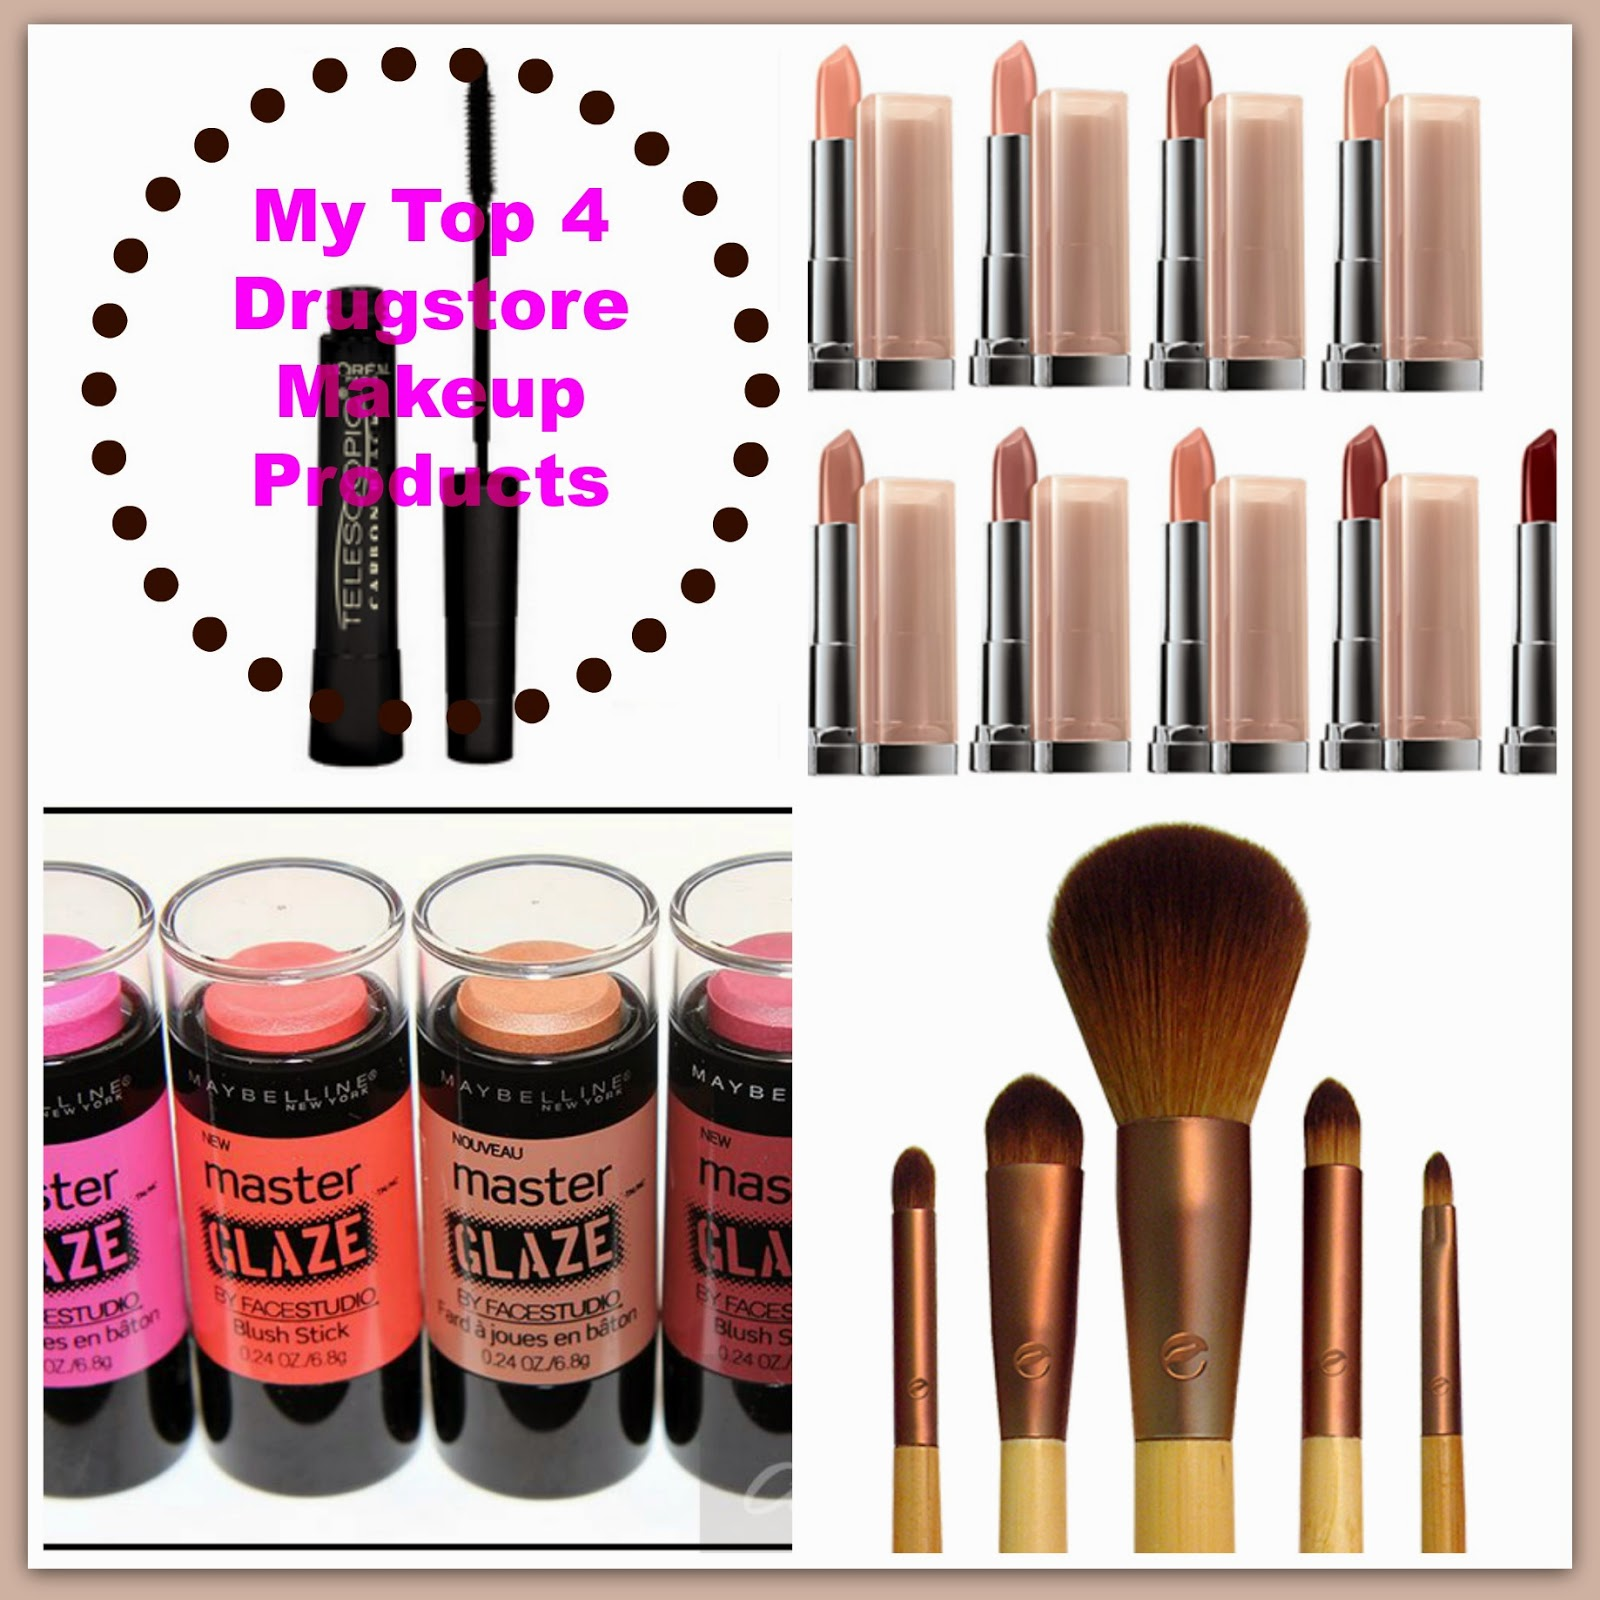 http://chrysalisbeautybag.blogspot.com/2015/02/my-top-4-drugstore-makeup-products.html